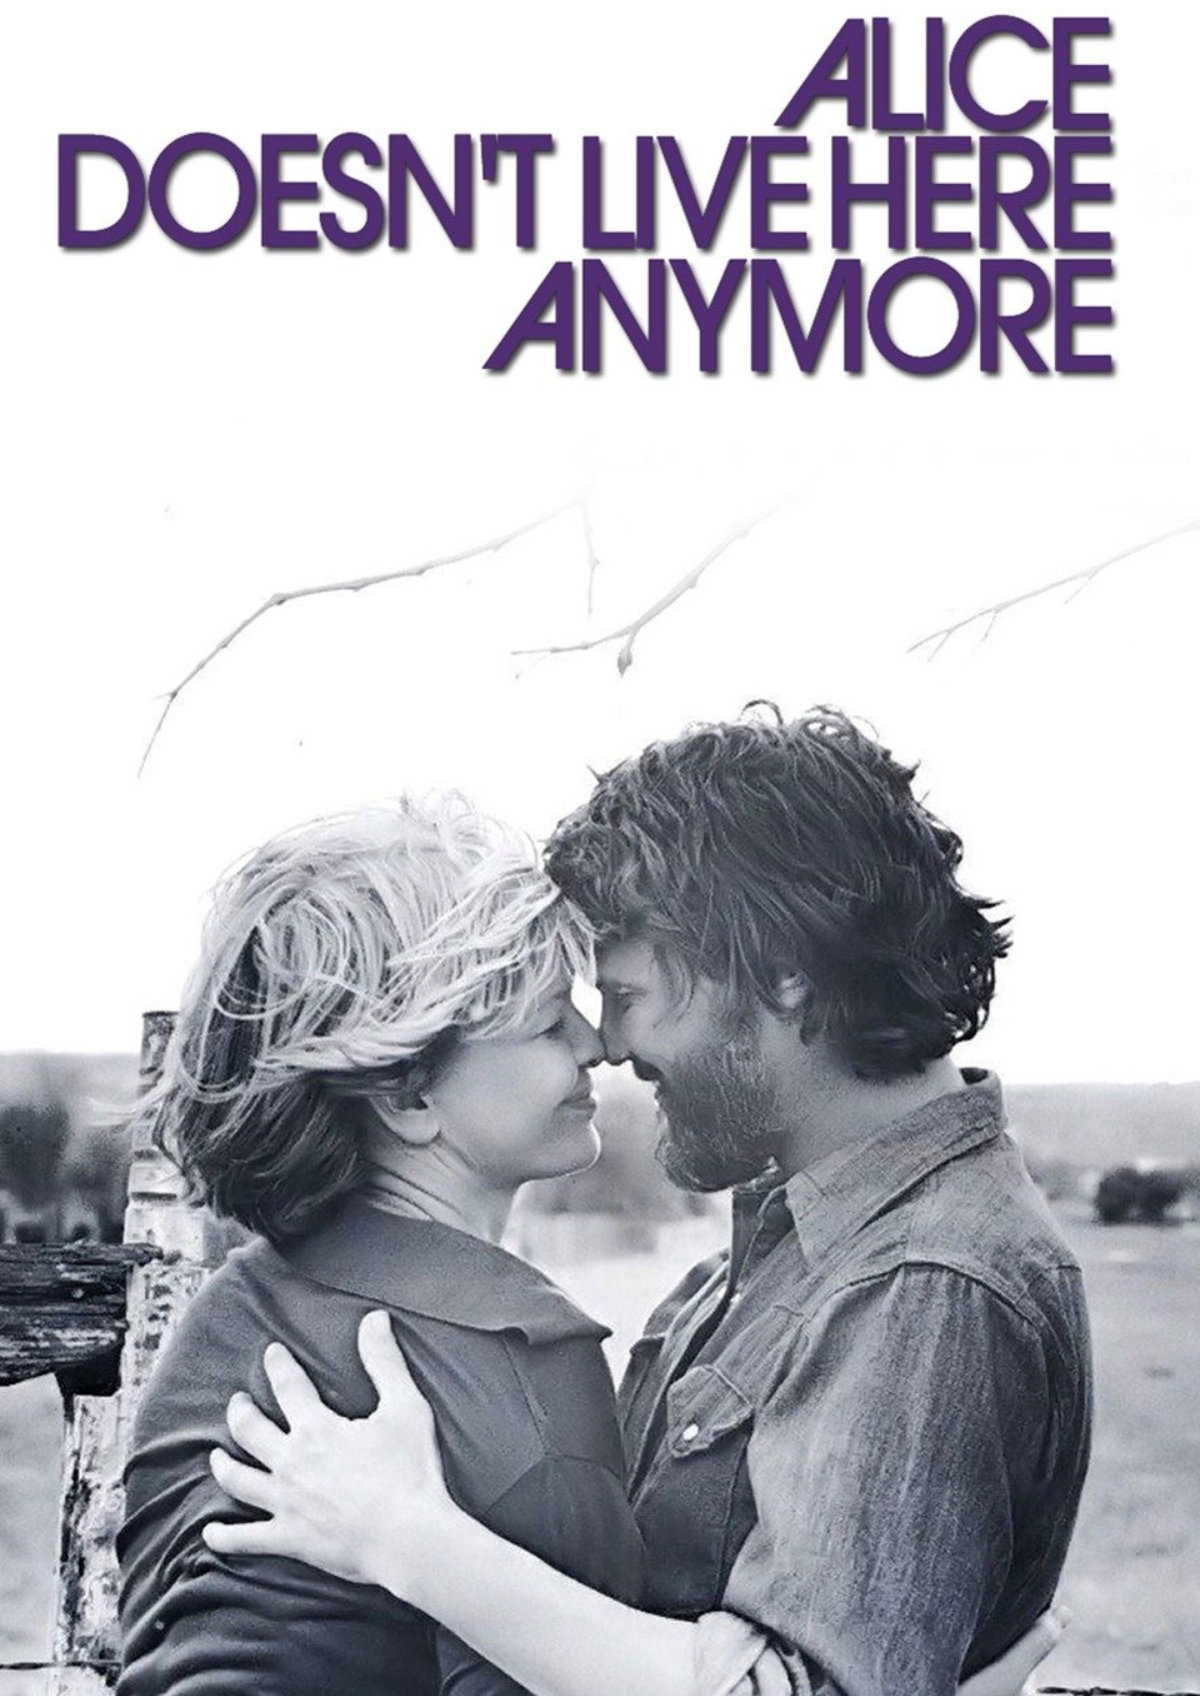 'Alice Doesn't Live Here Anymore' movie poster